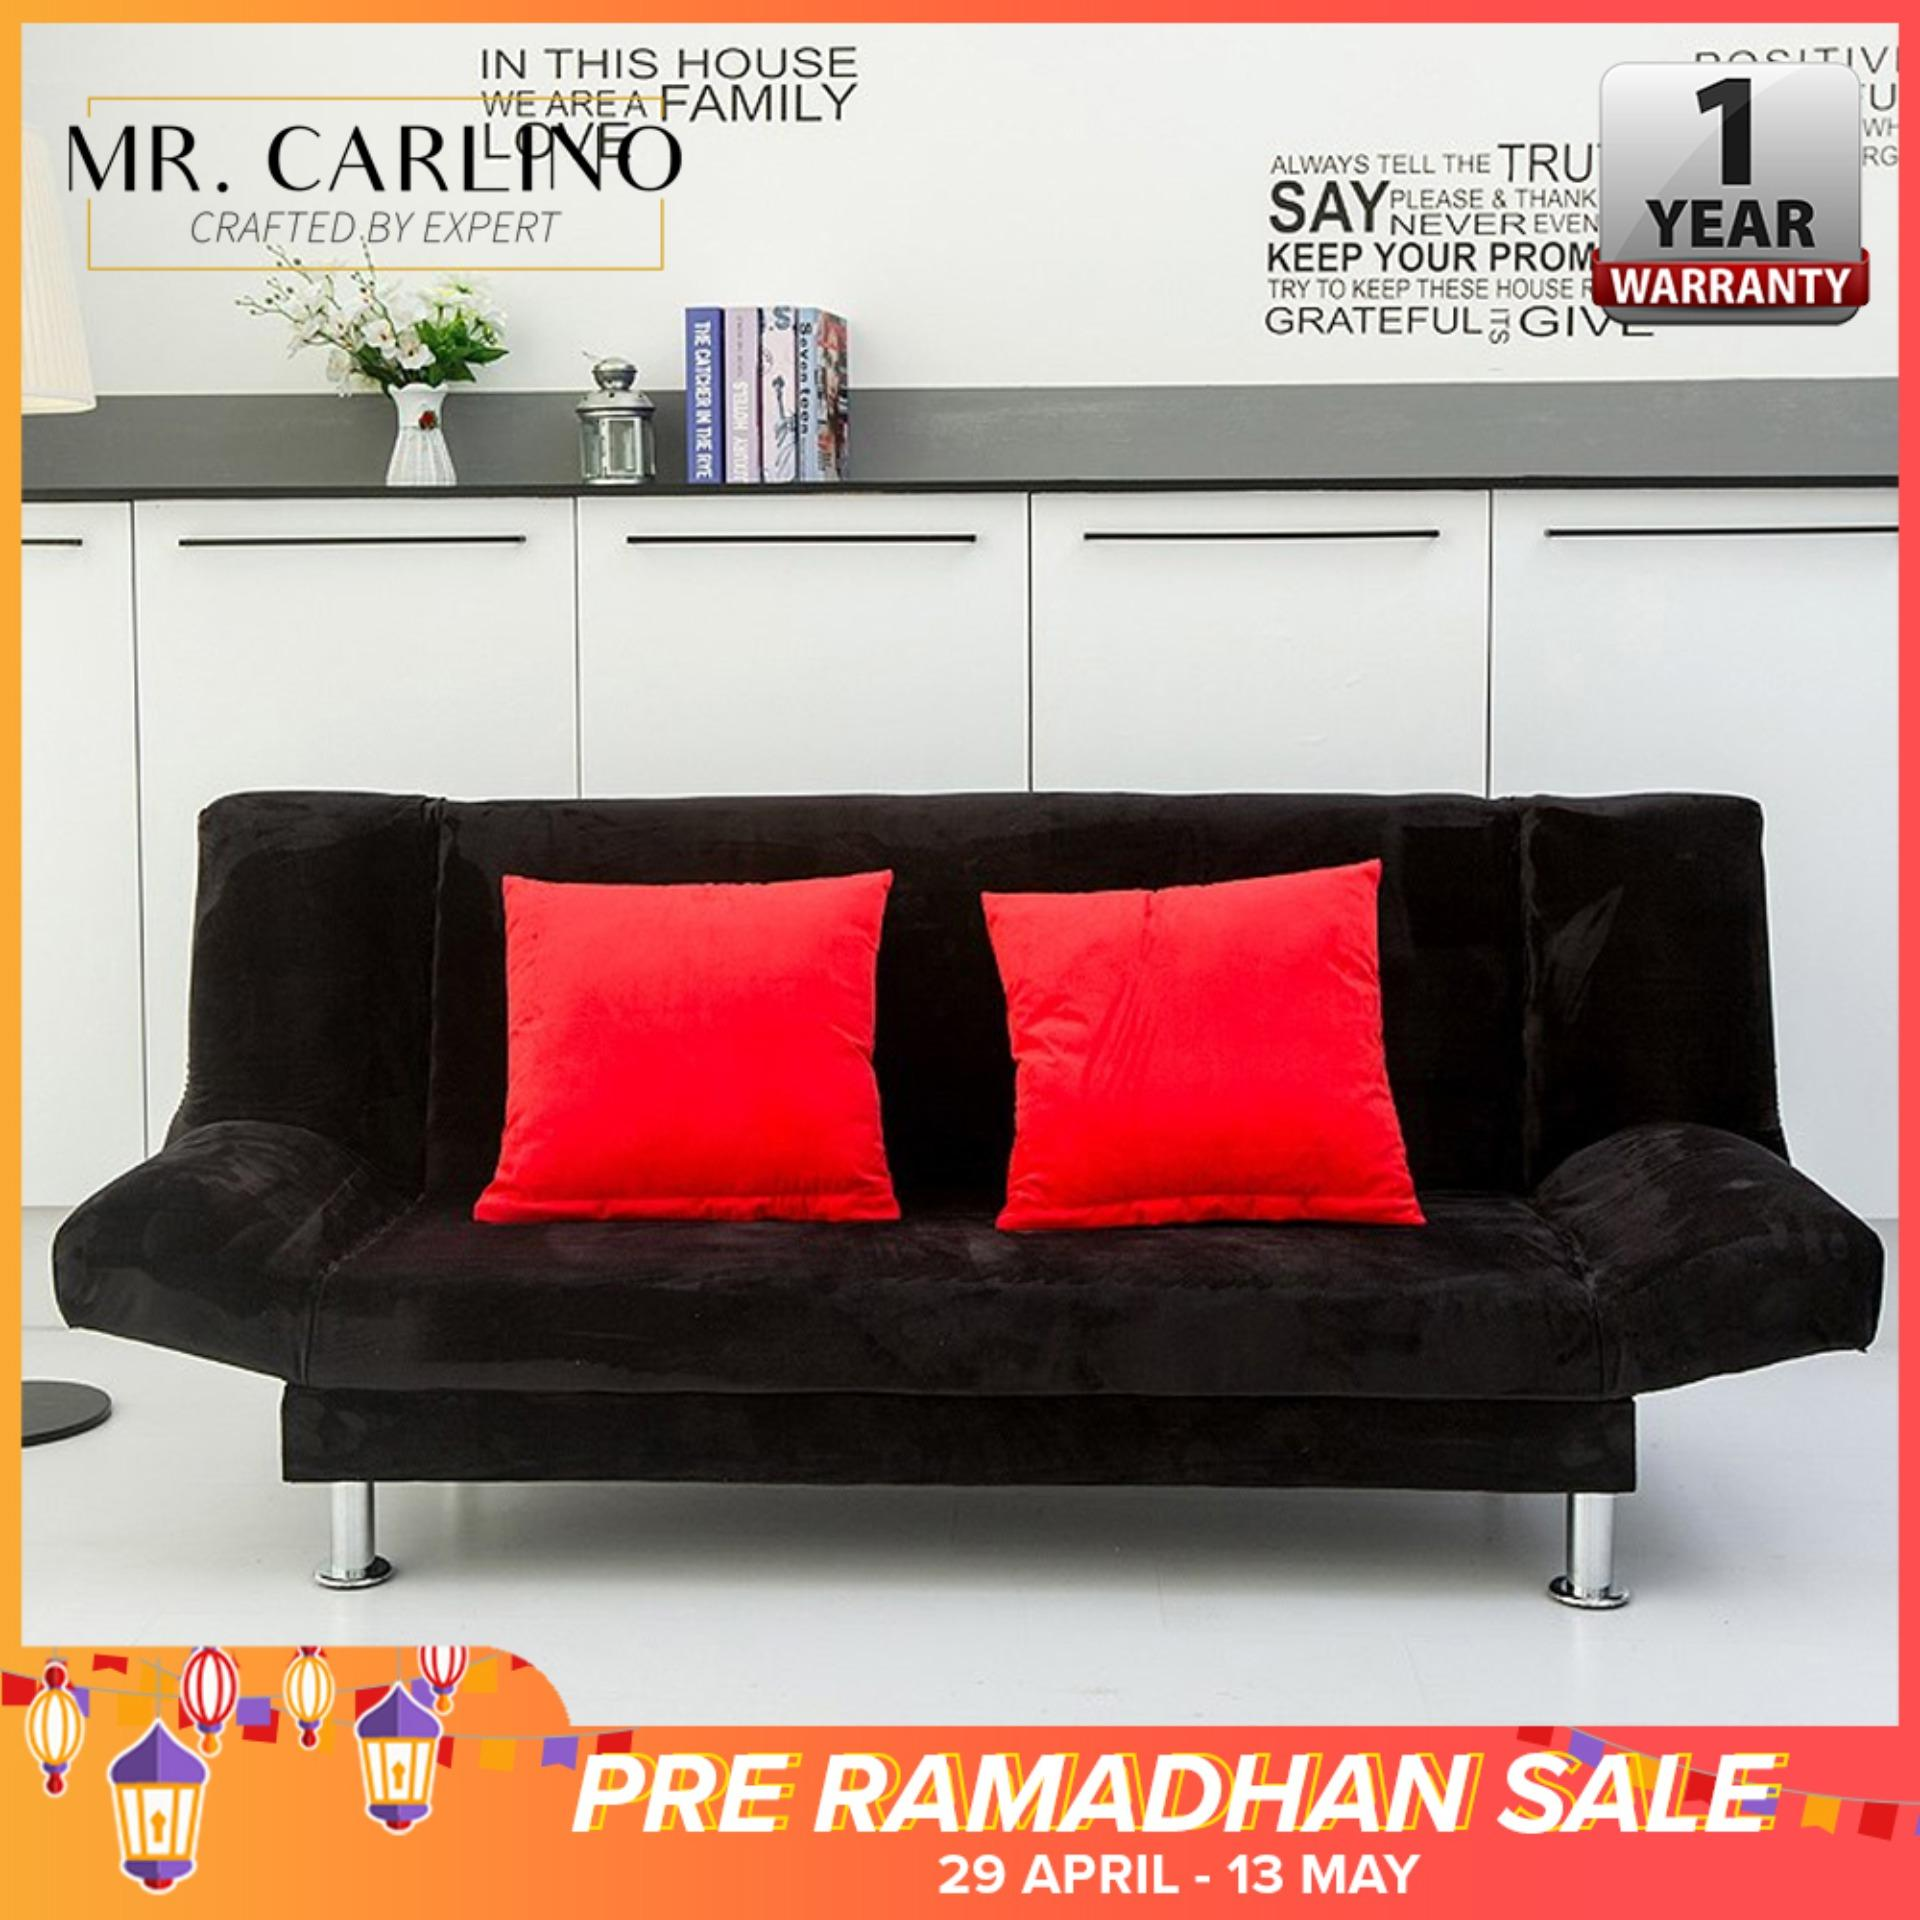 Bradley 2 Seater Foldable Sofa Bed With 1 Year Warranty By Casa Muebles.